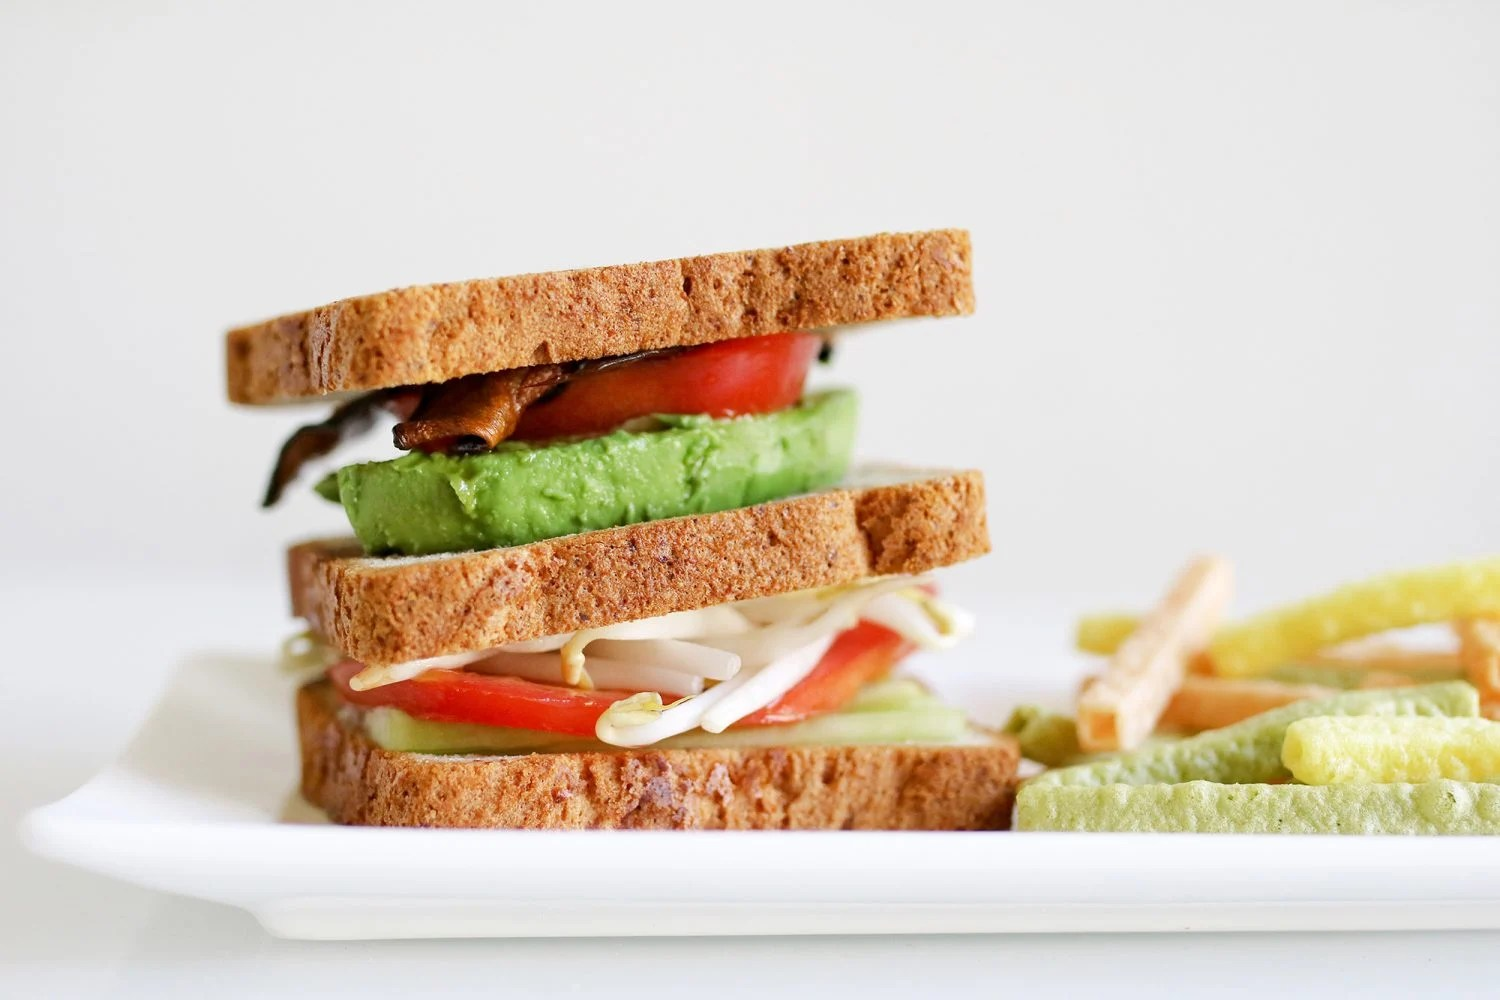 vegan sandwich, gluten free bread, gluten free sandwich, avocado sandwich, Udi's Gluten Free Bread, vegetarian sandwich, vegetarian lunch, vegan lunch, healthy kid foods, kid friendly snacks, kid friendly breakfast, easy breakfast ideas, easy snack ideas, mom blog, mom blogger, mom bloggers, mom blogs, family friendly dishes, recipes, recipe, food blog, food bloggers